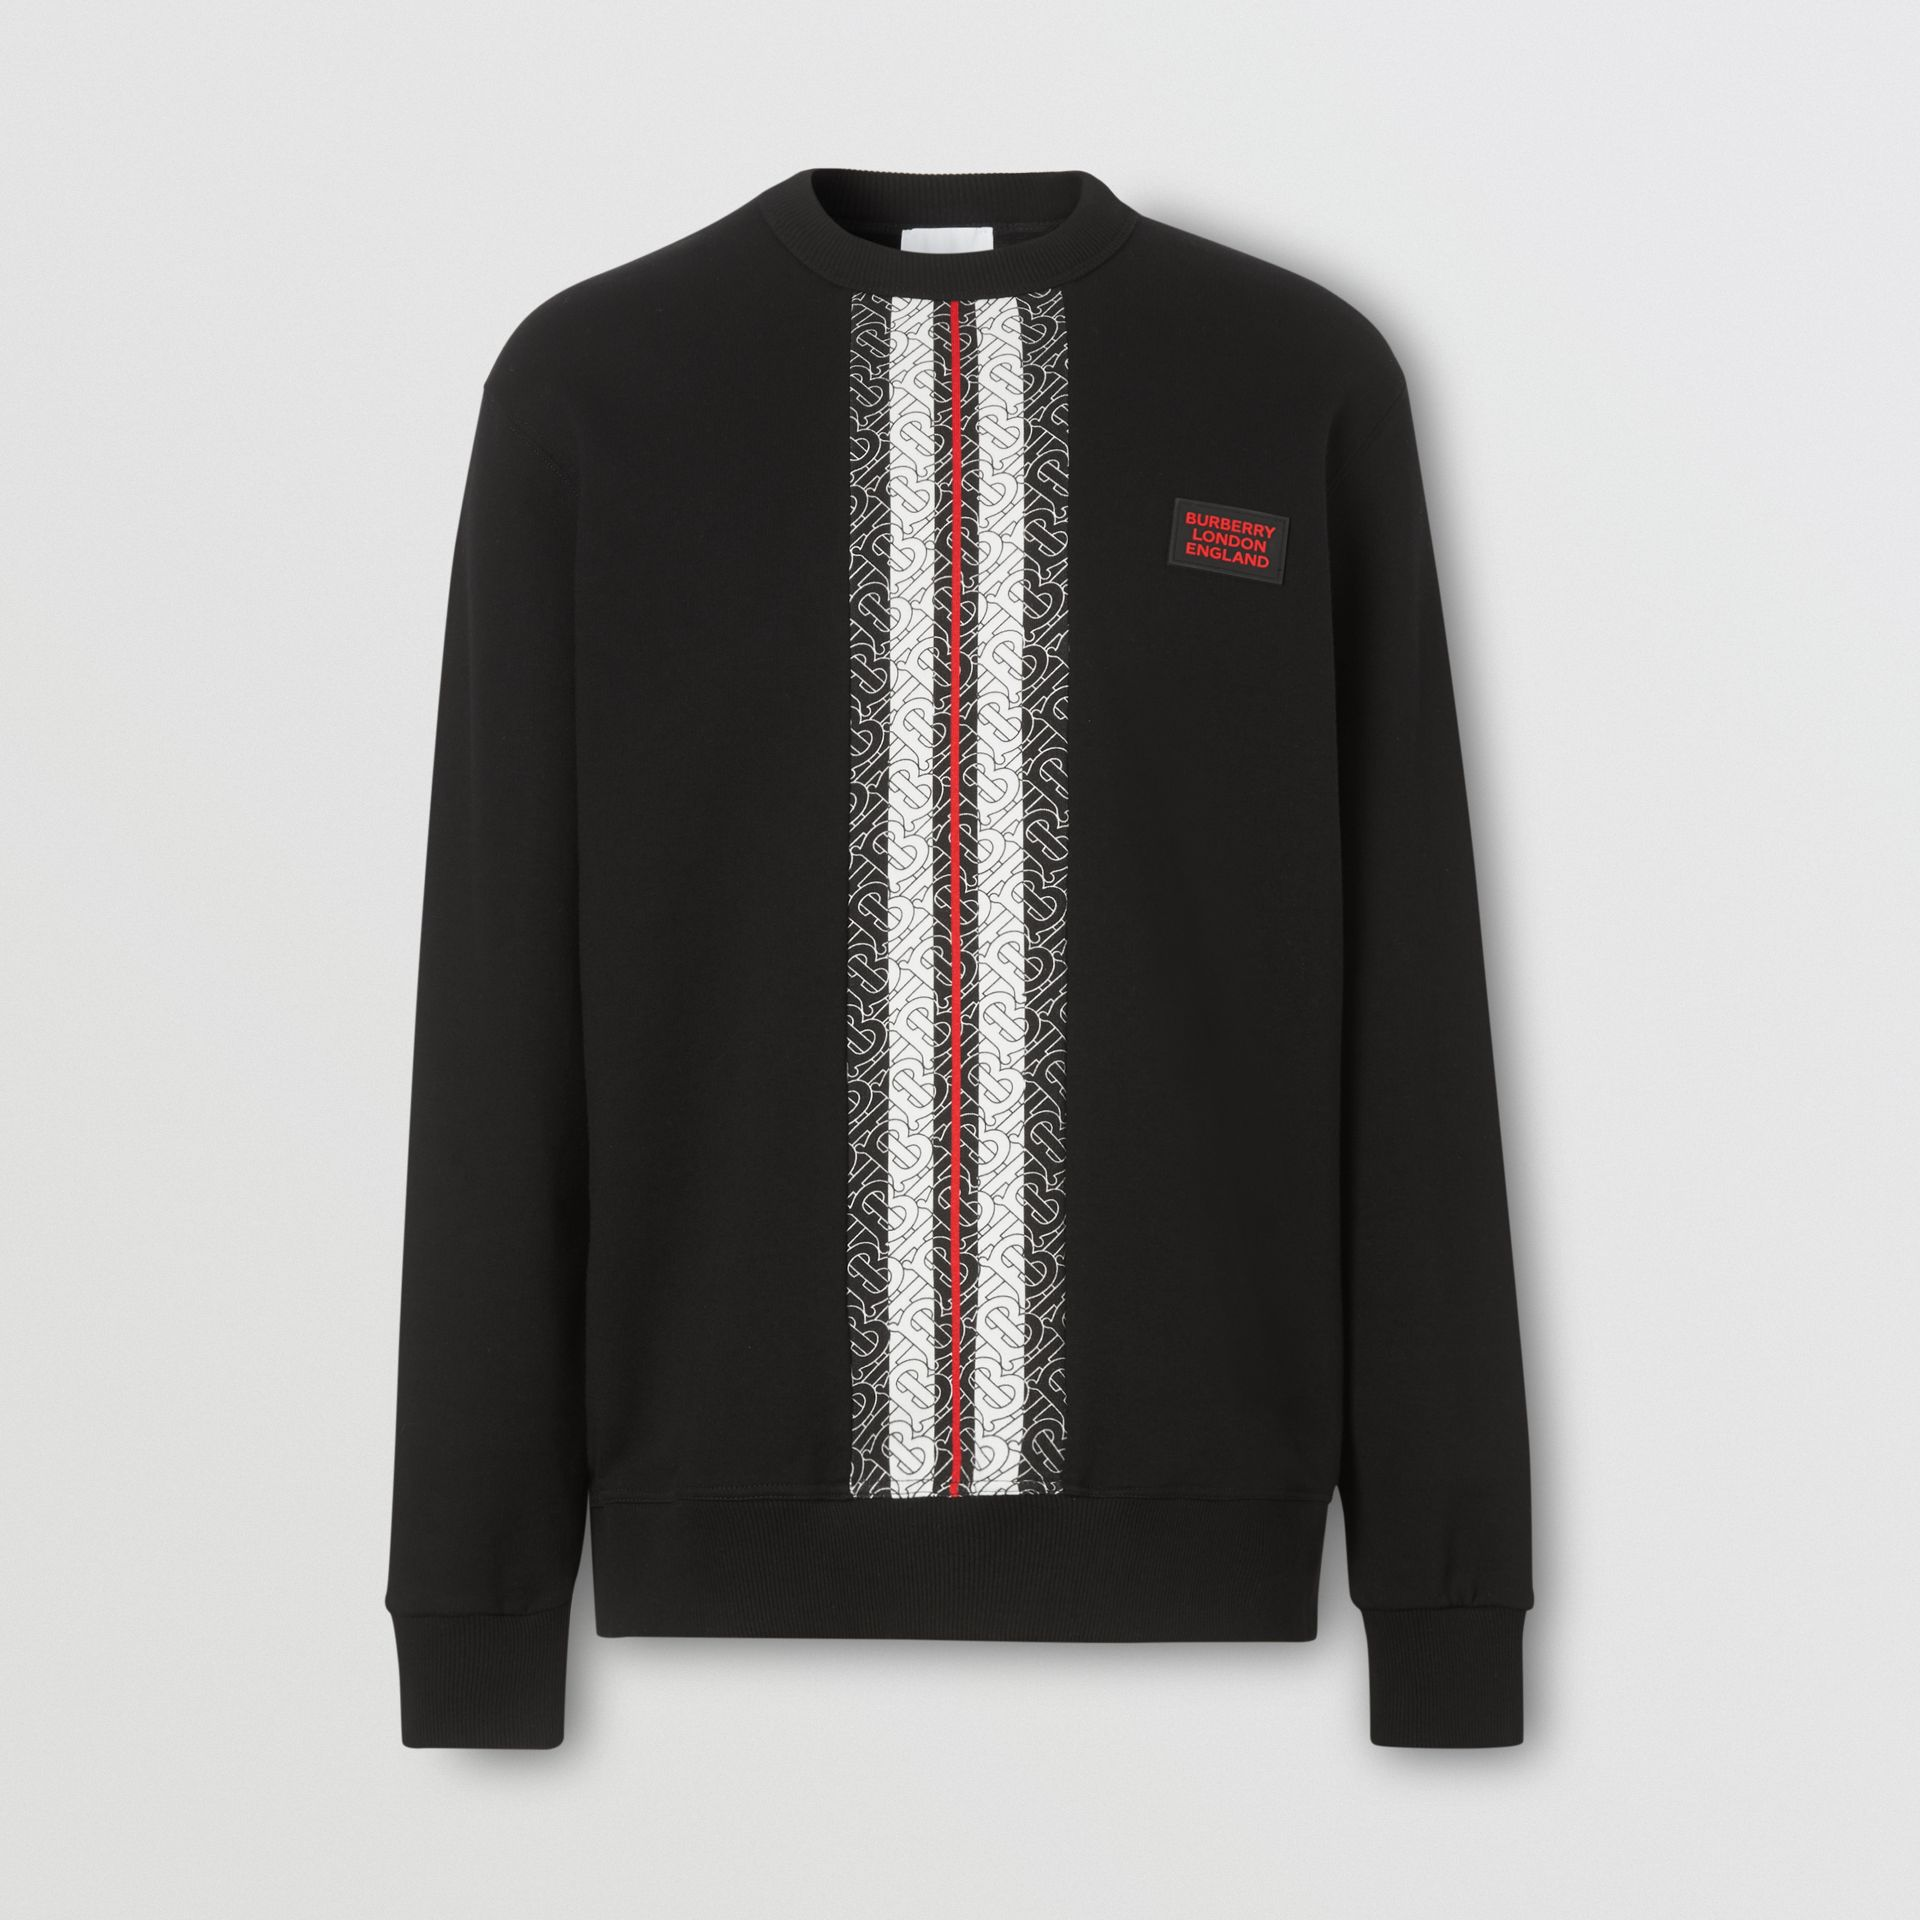 Monogram Stripe Print Cotton Sweatshirt in Black - Men | Burberry - gallery image 3